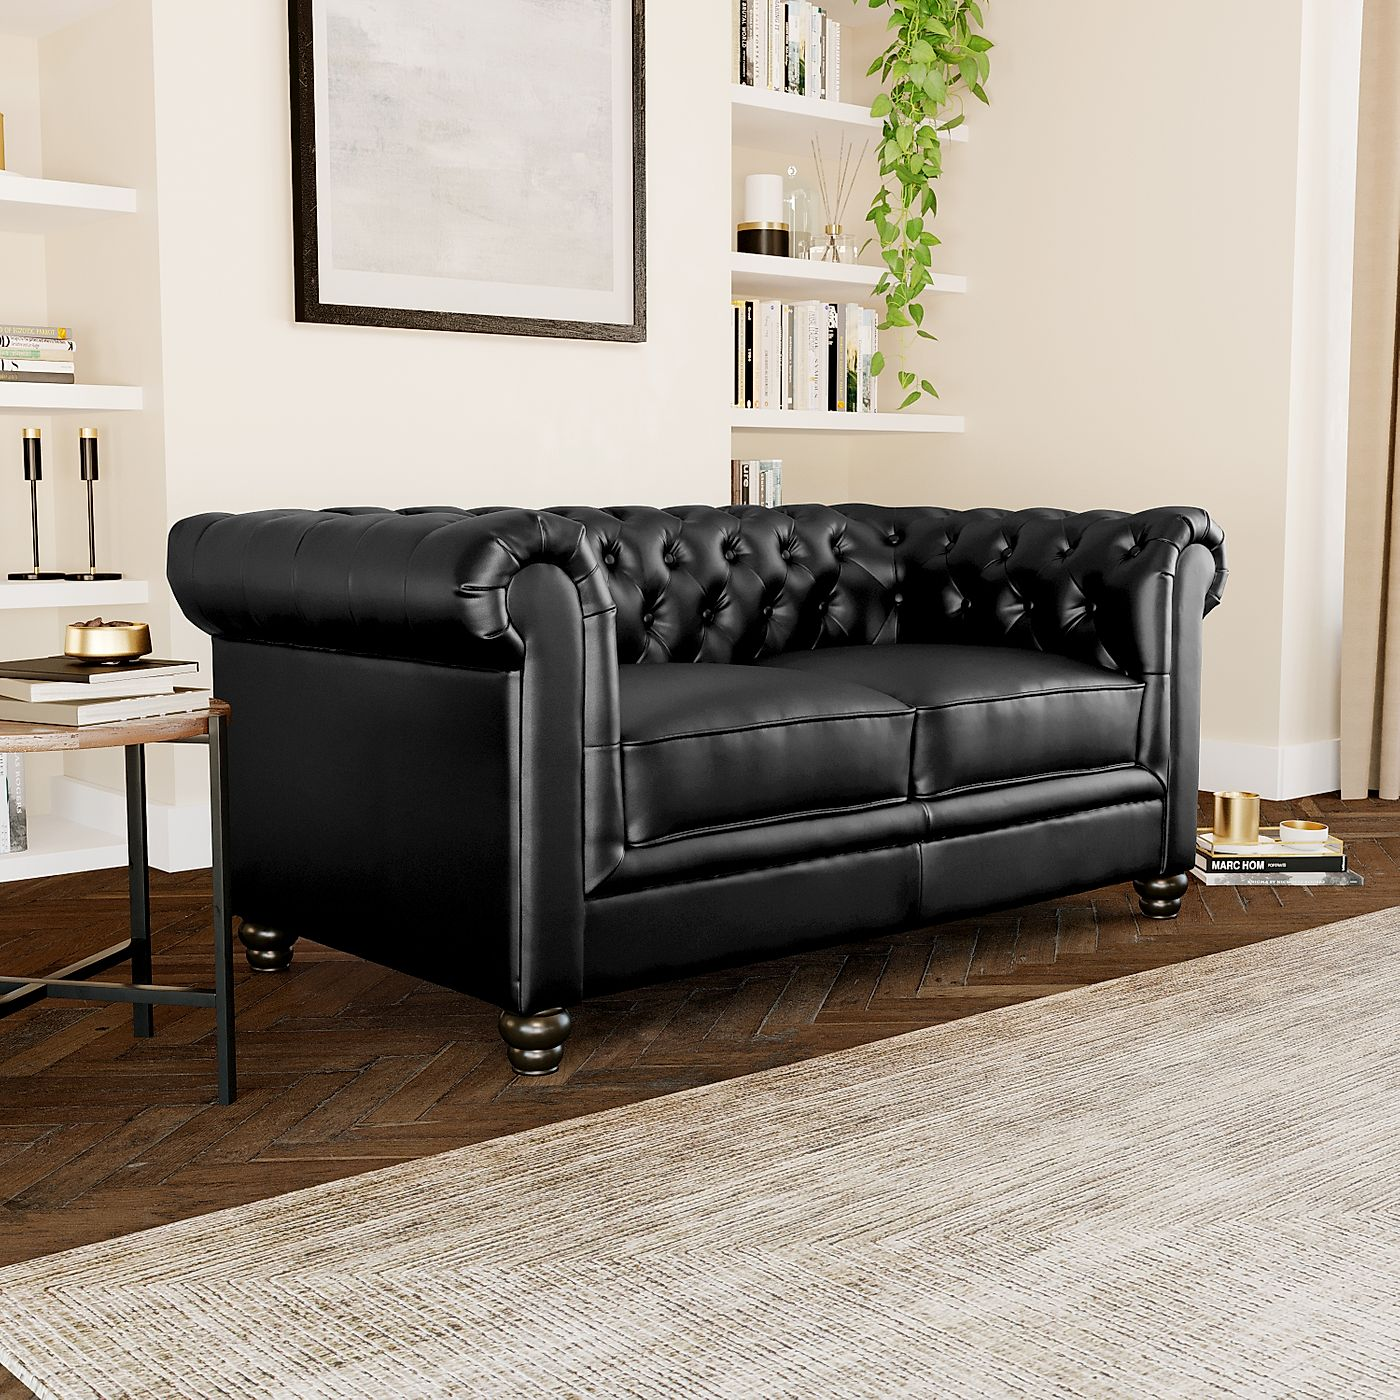 Superb Hampton Black Leather 2 Seater Chesterfield Sofa Pabps2019 Chair Design Images Pabps2019Com